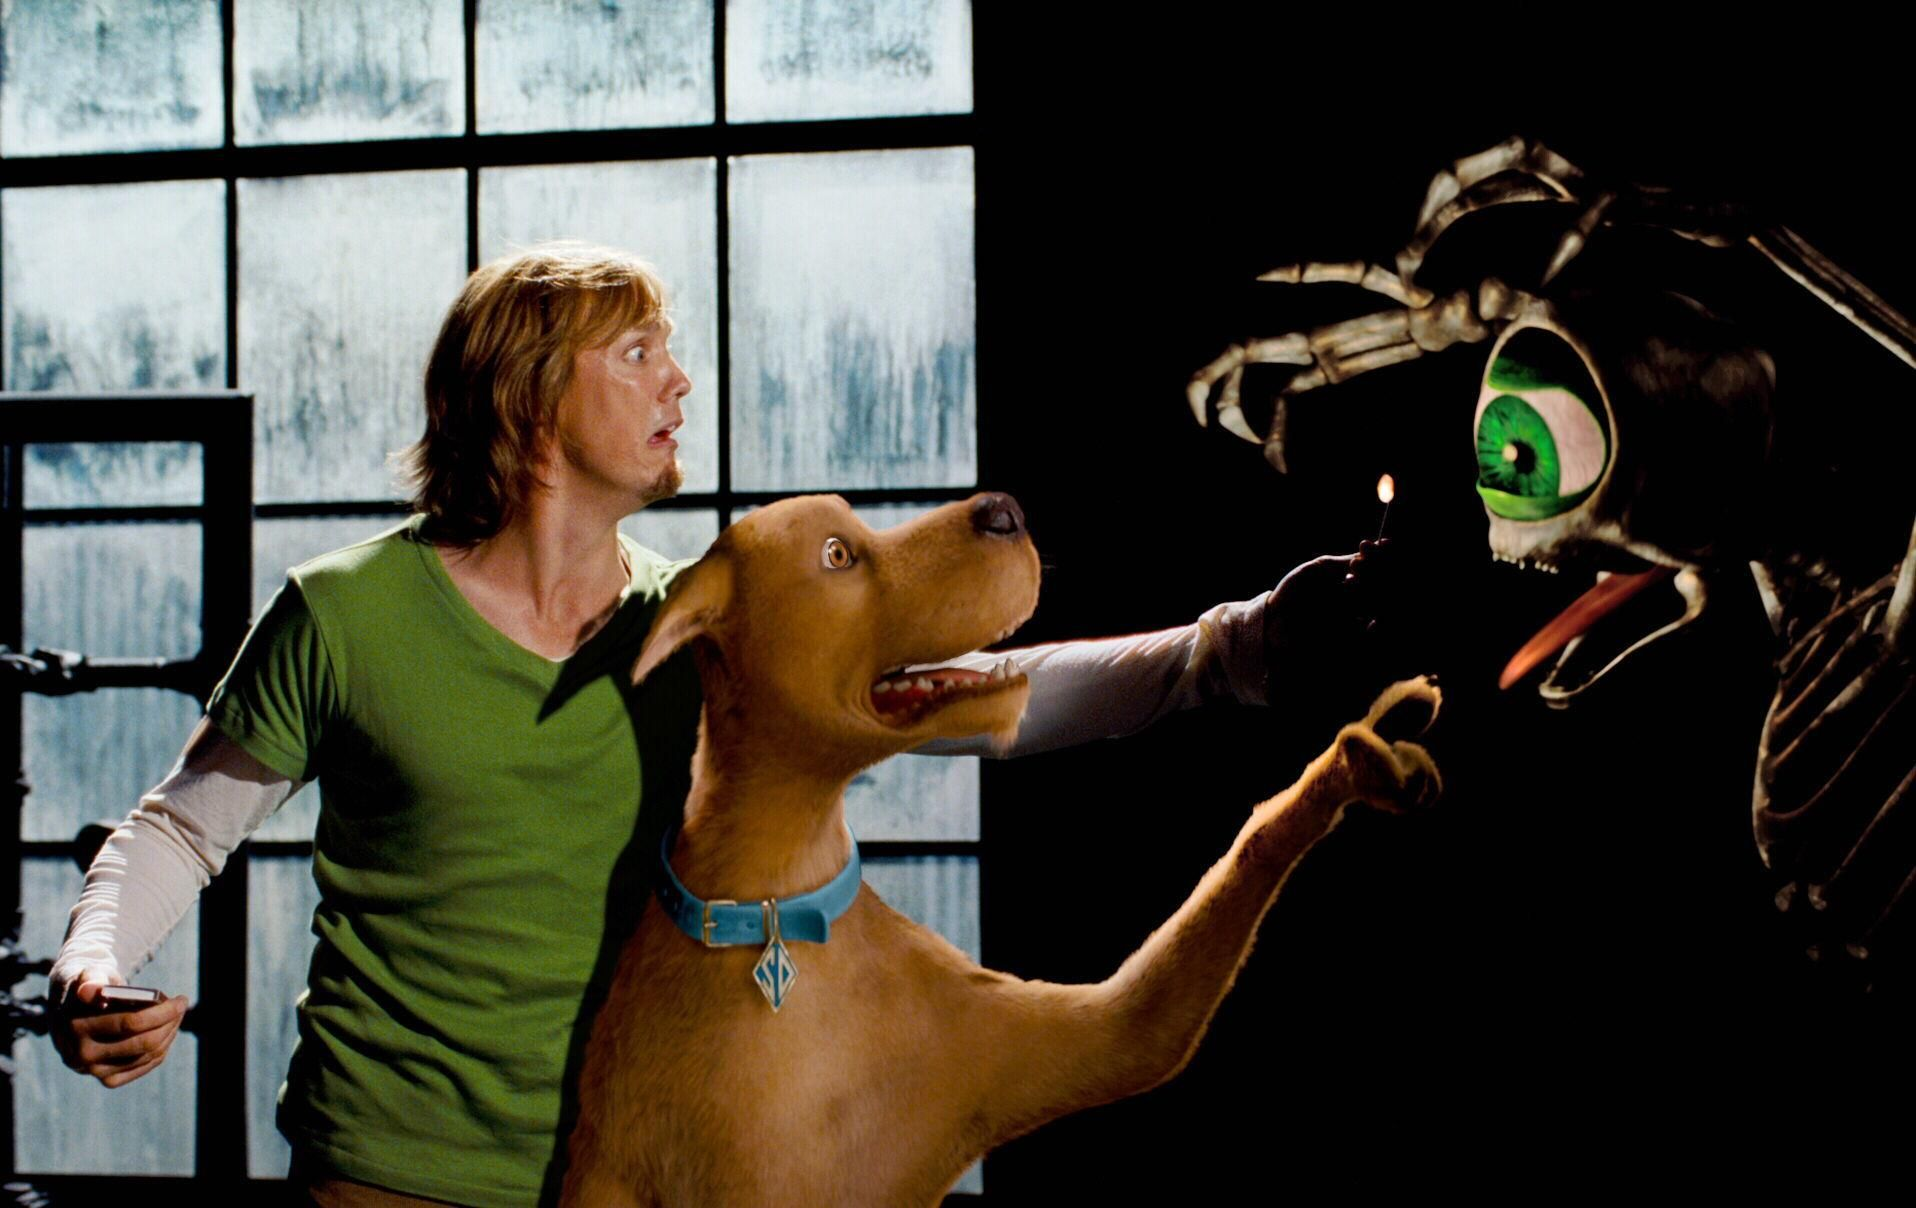 Still Of Matthew Lillard In Scooby Doo 2 Monsters Unleashed 2004 Scooby Doo Free Movies Online Full Movies Online Free